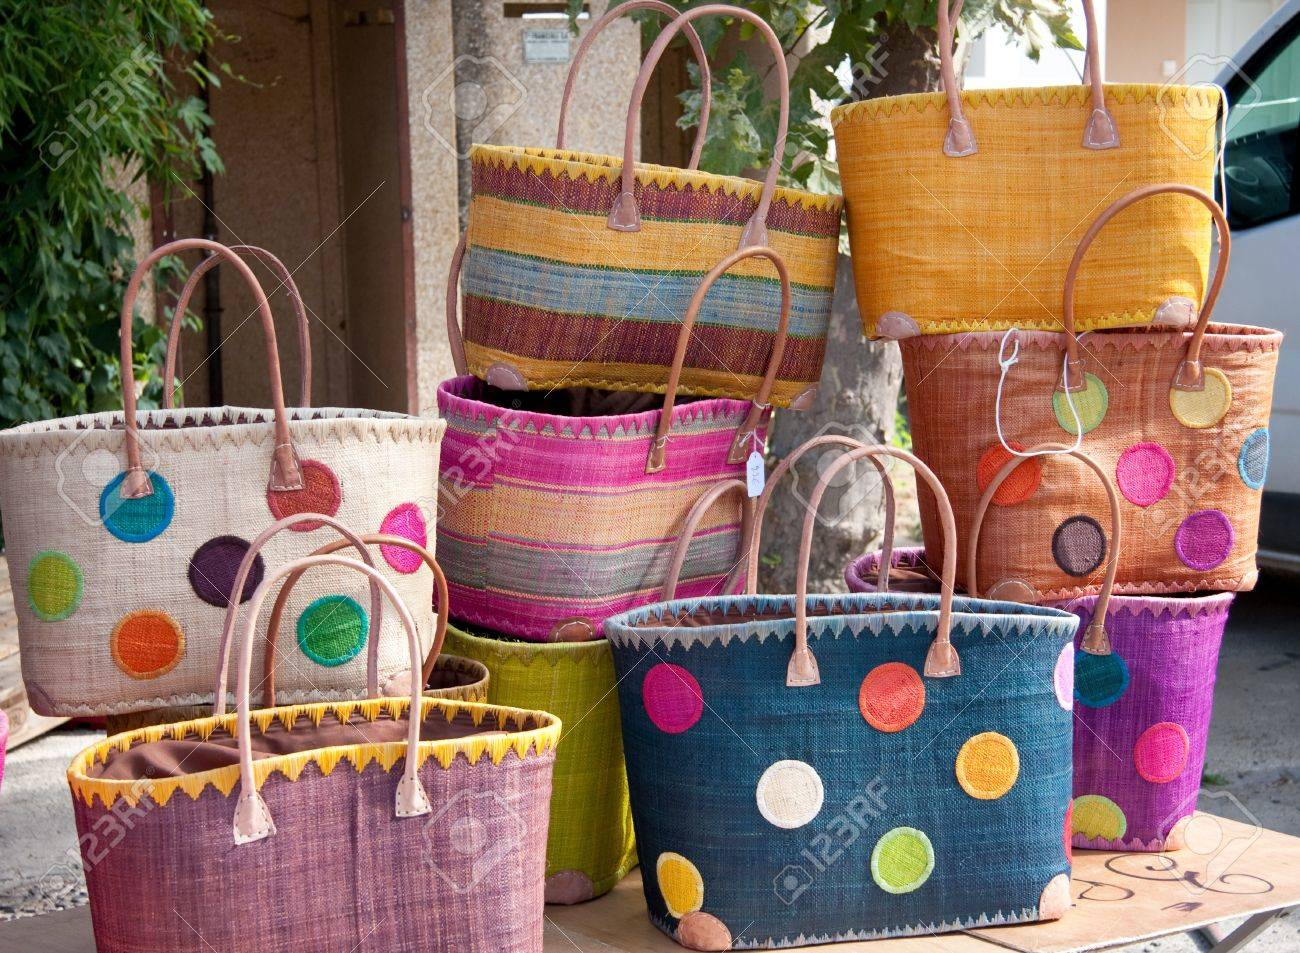 Colorful Handmade Shopping Bags For Sale On A Market Stock Photo ...